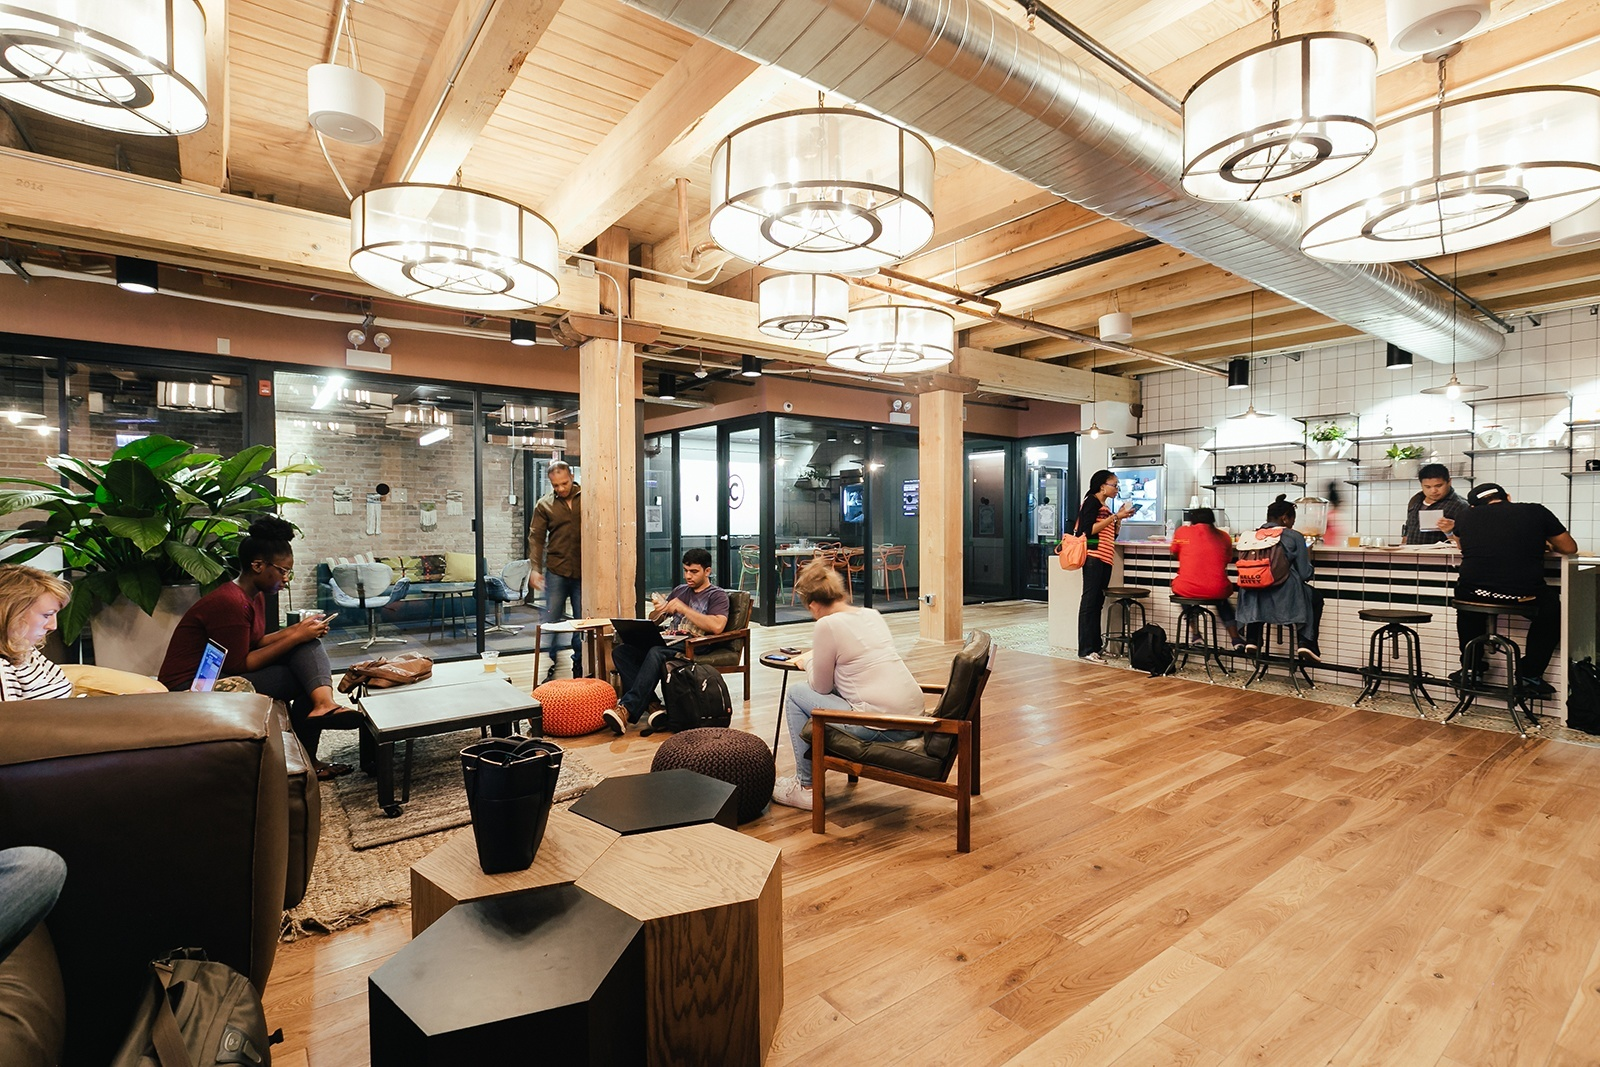 Check Out Photos Of Wework Fulton Market Officelovin